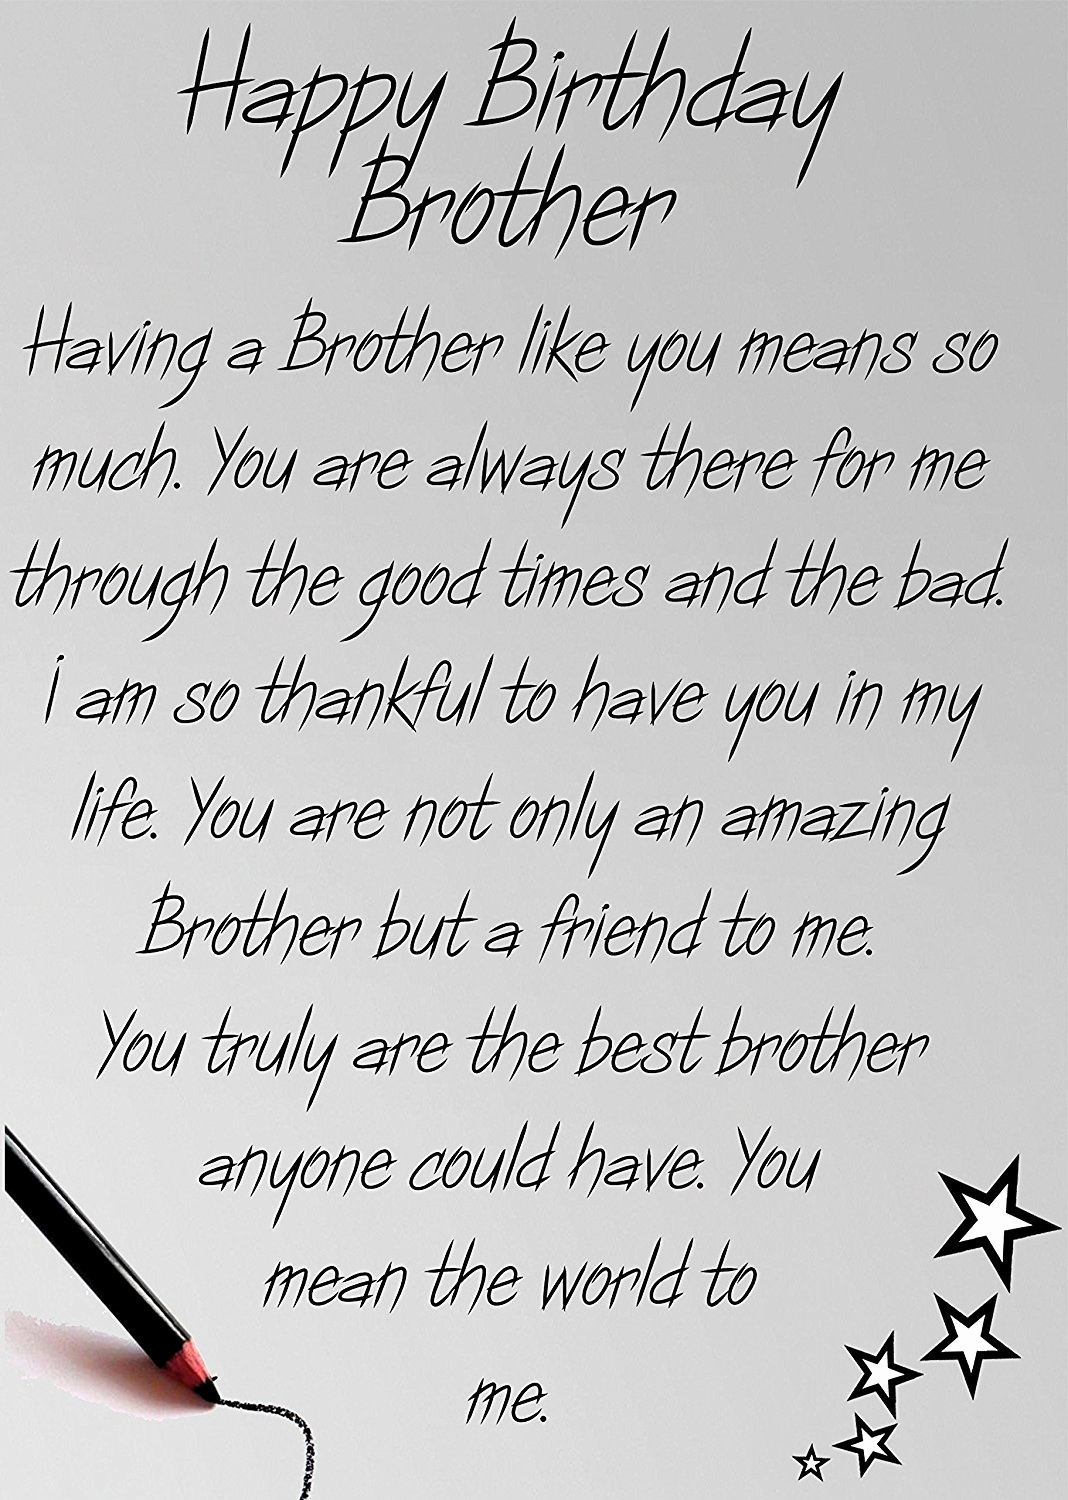 happy birthday brother letter ; birthday-cards-for-brothers-inspirational-brother-birthday-card-brother-happy-birthday-amazon-of-birthday-cards-for-brothers